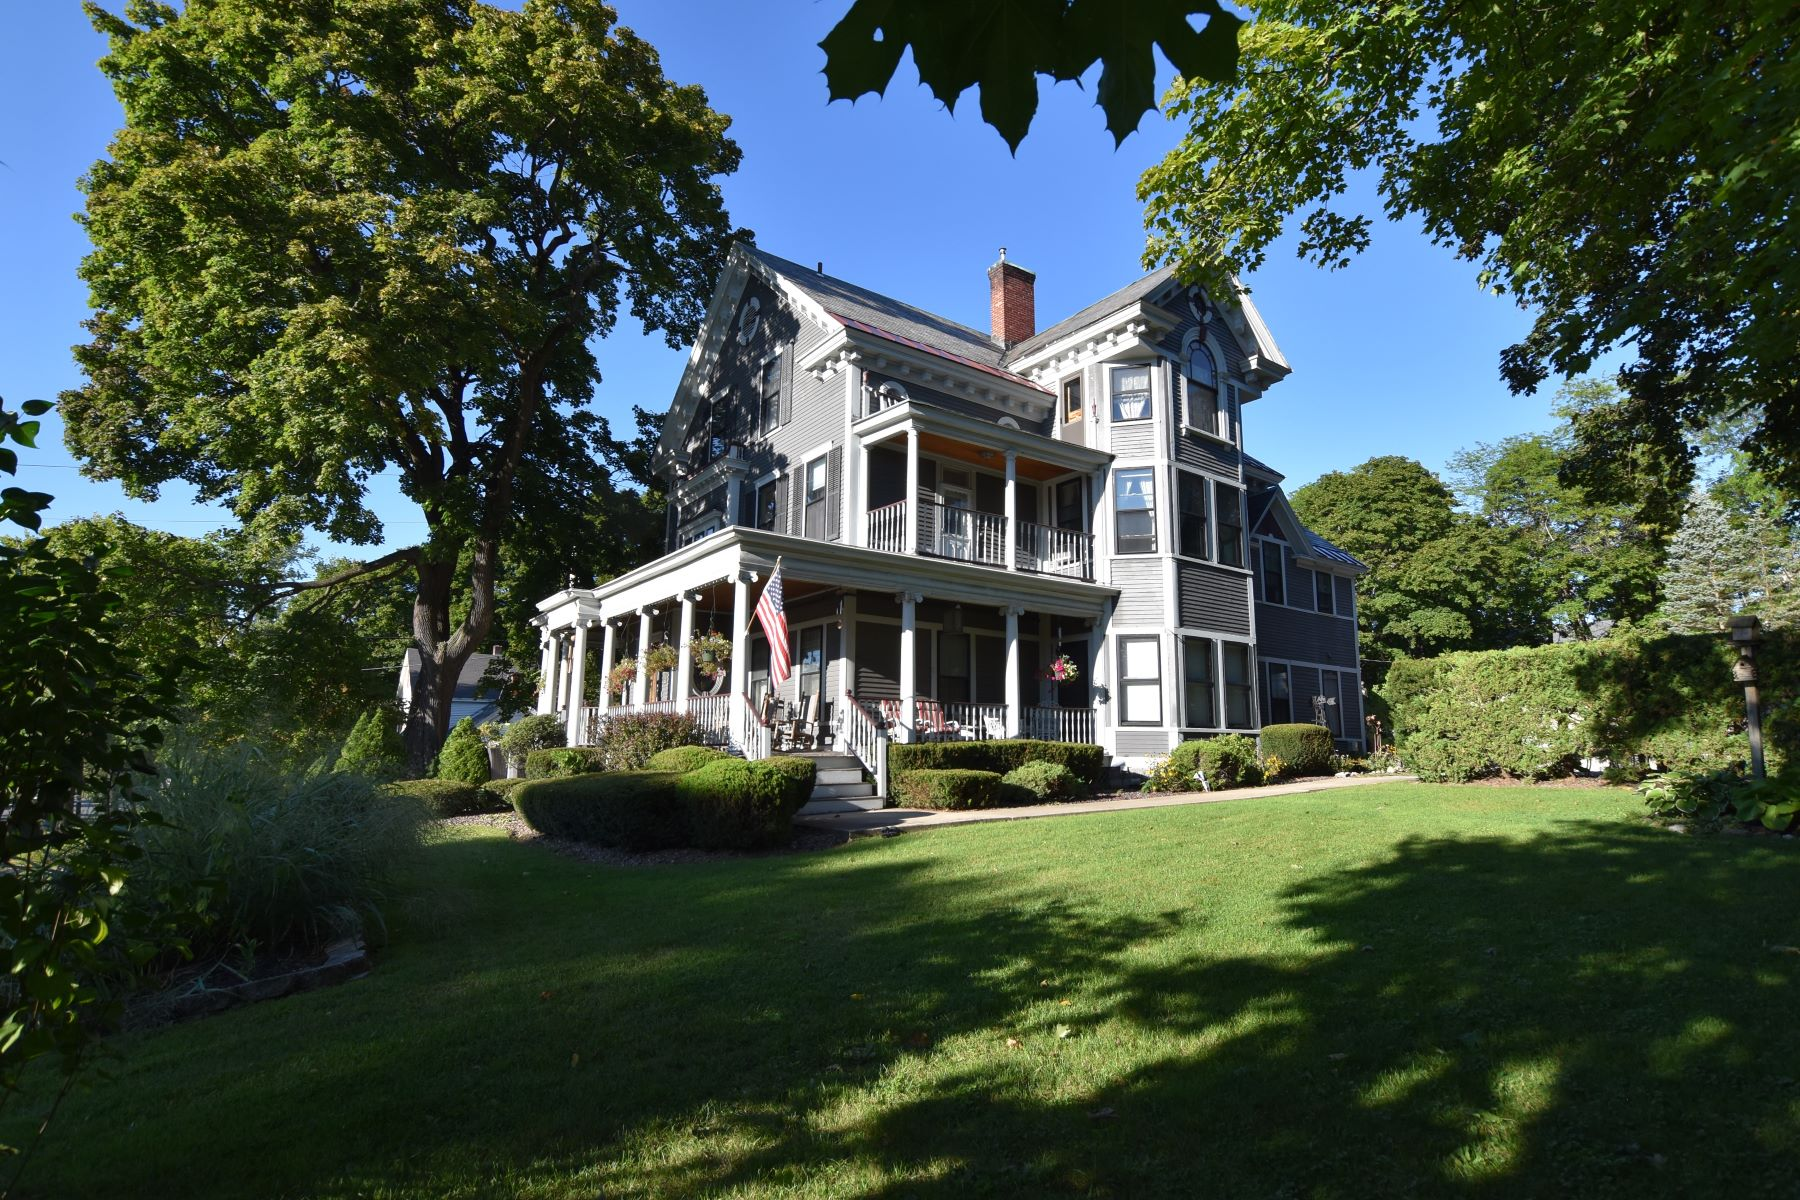 Single Family Home for Sale at Grand Victorian located in multi-use zone 70 North Main St Rutland, Vermont 05701 United States